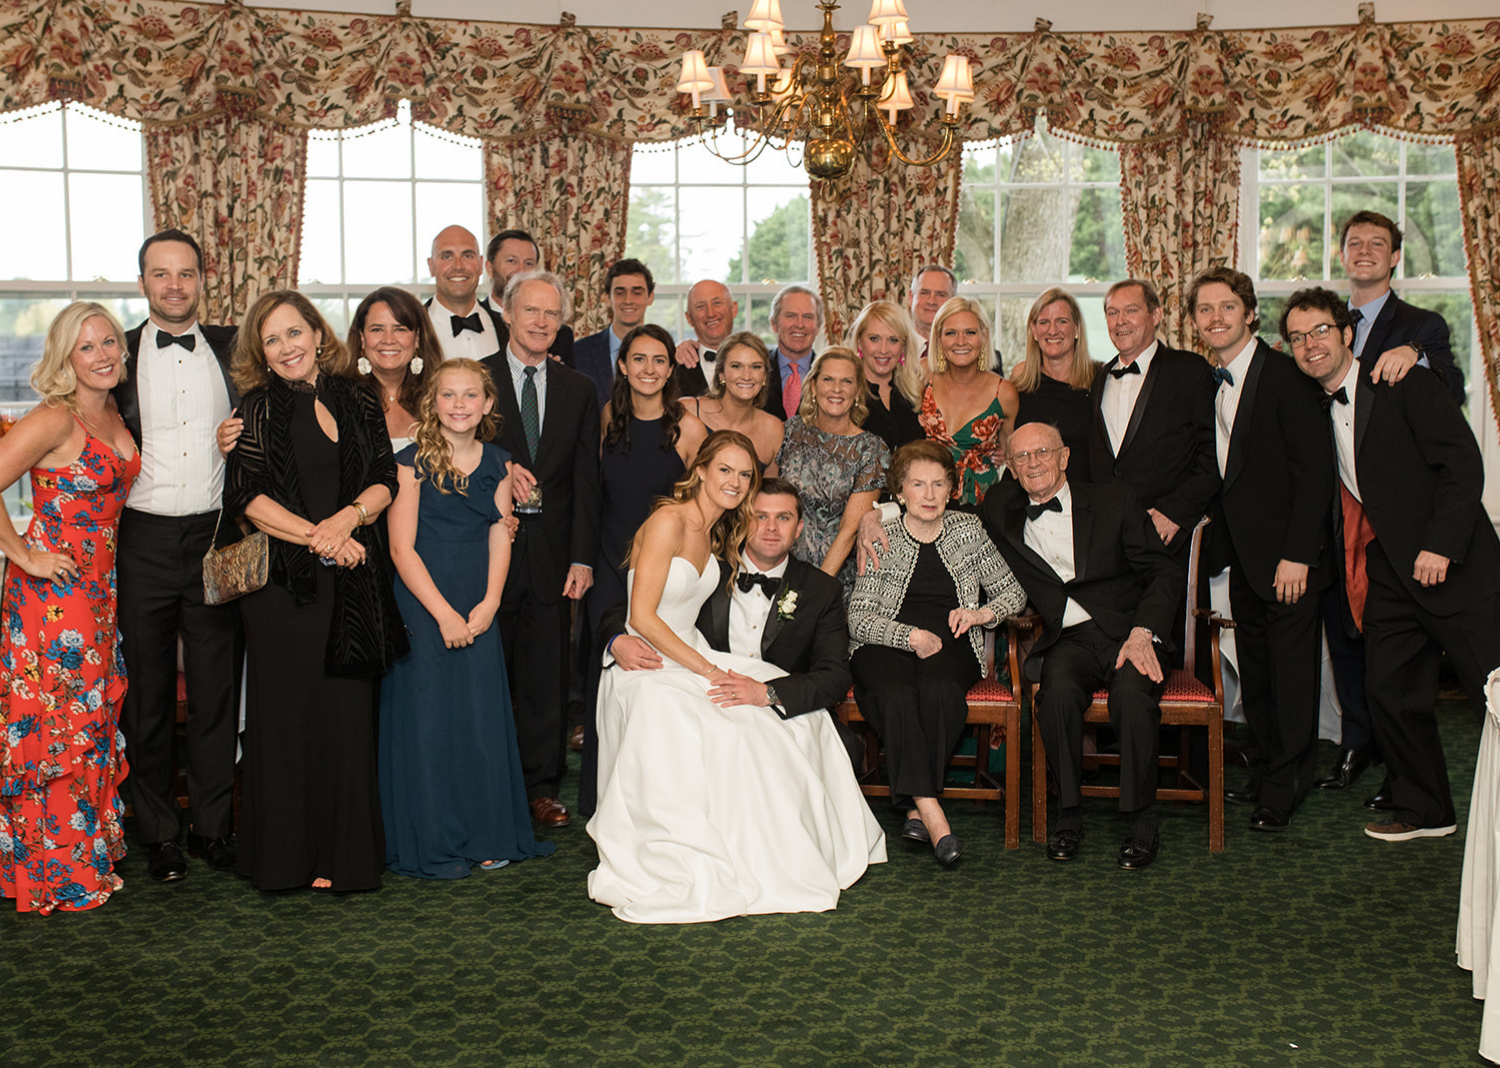 bride and groom with their family during the wedding reception